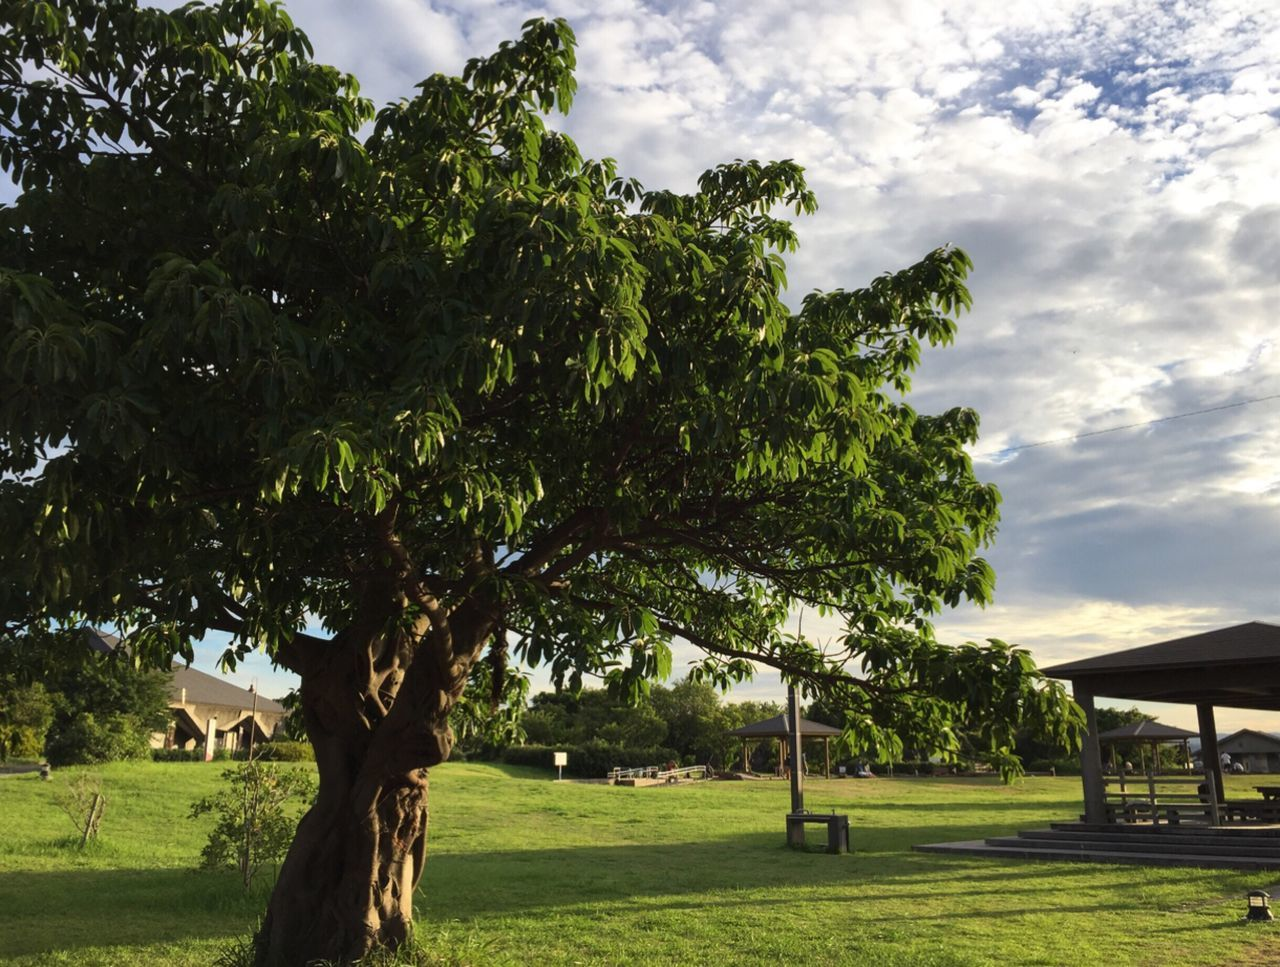 tree, built structure, day, grass, green color, no people, tranquility, architecture, outdoors, nature, sky, growth, building exterior, landscape, beauty in nature